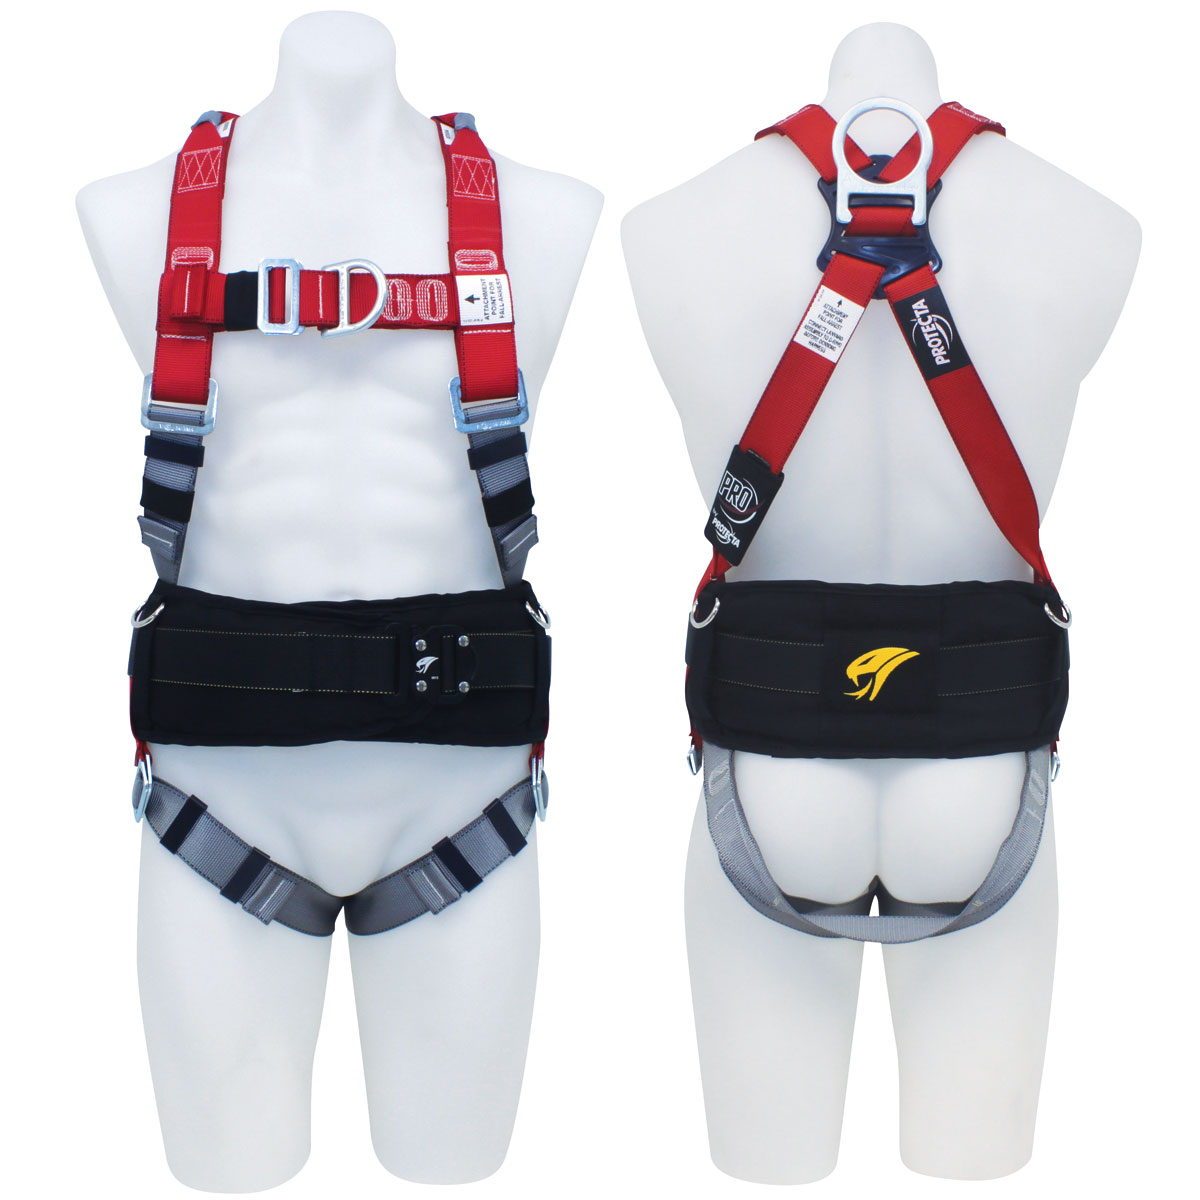 Harness - Scaffolders 3M Protecta P100 AB125L c/w Front/Rear D Rings & Retrieval Points Incl. Padded Tool Belt - L